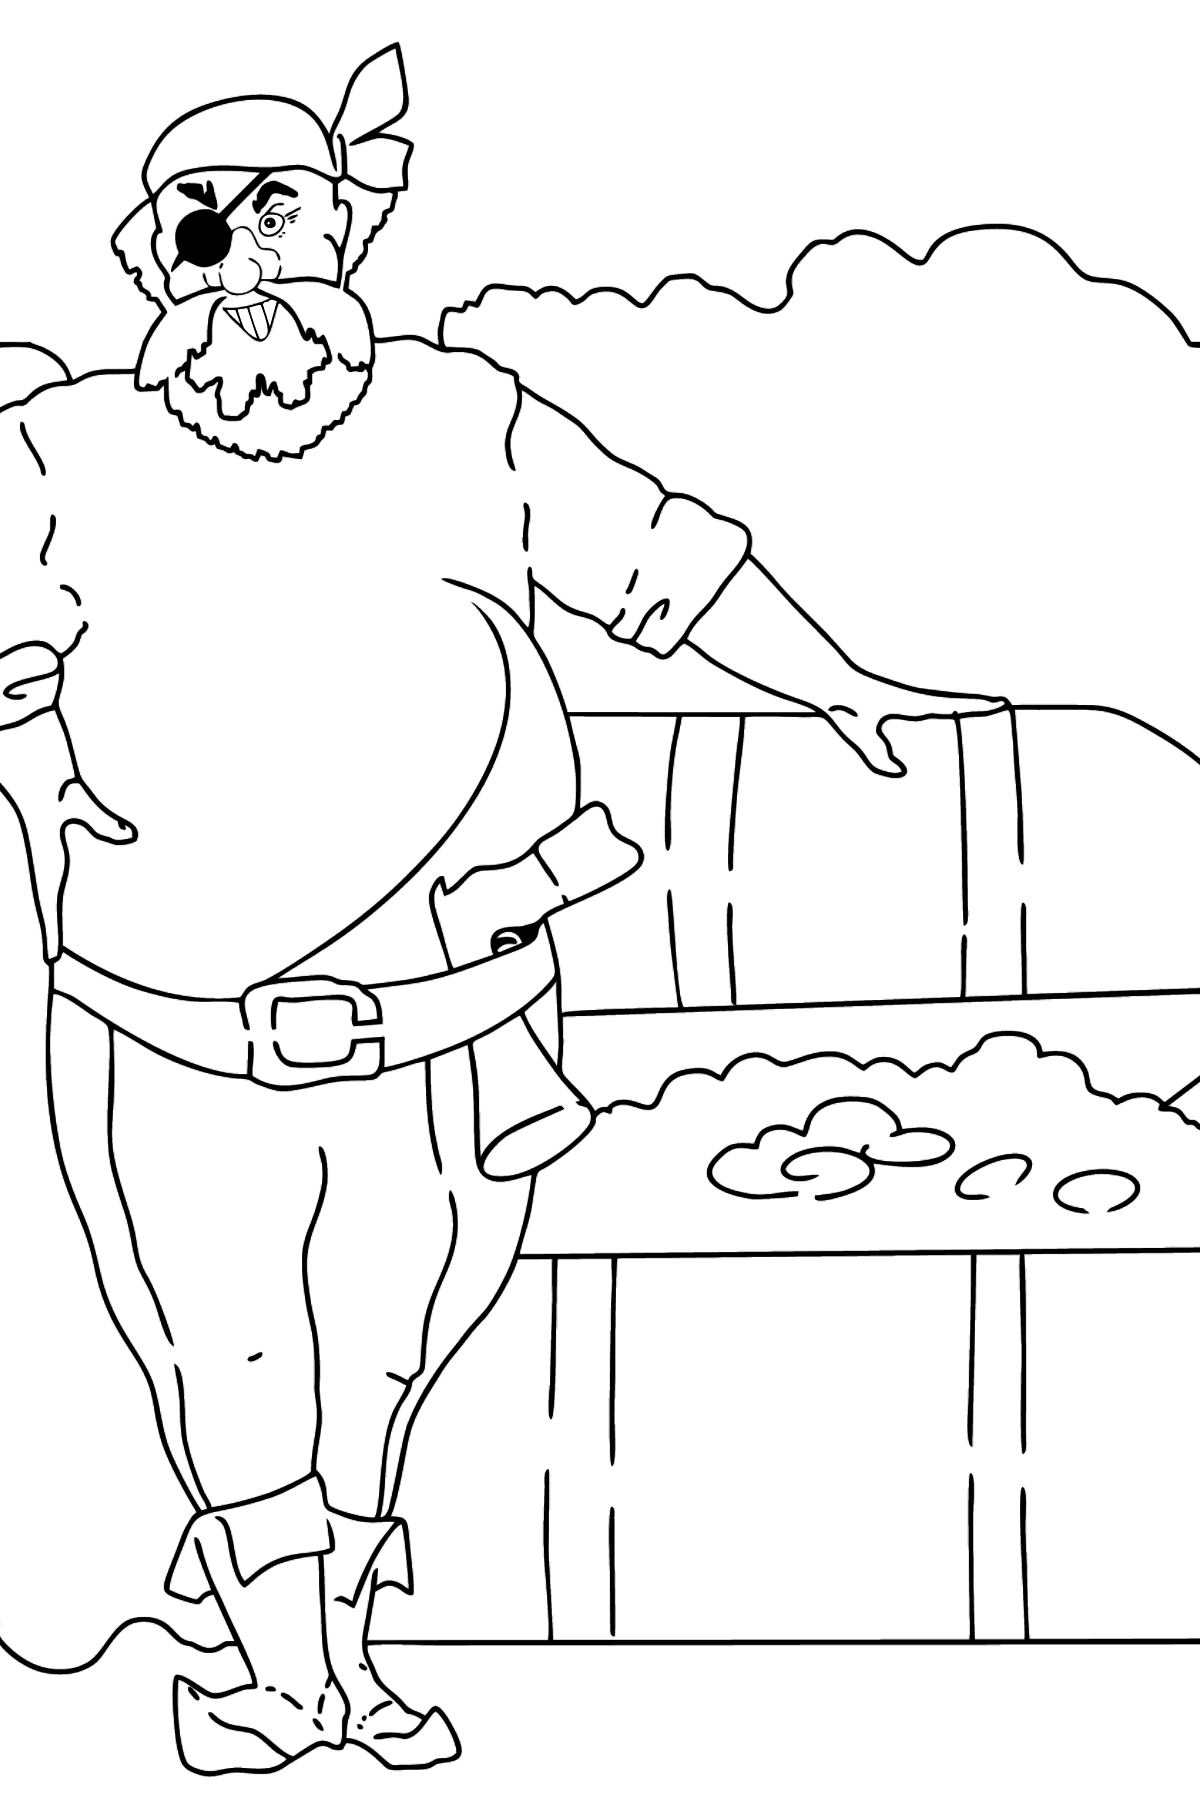 Coloring Page - A Pirate with Treasure - Coloring Pages for Kids